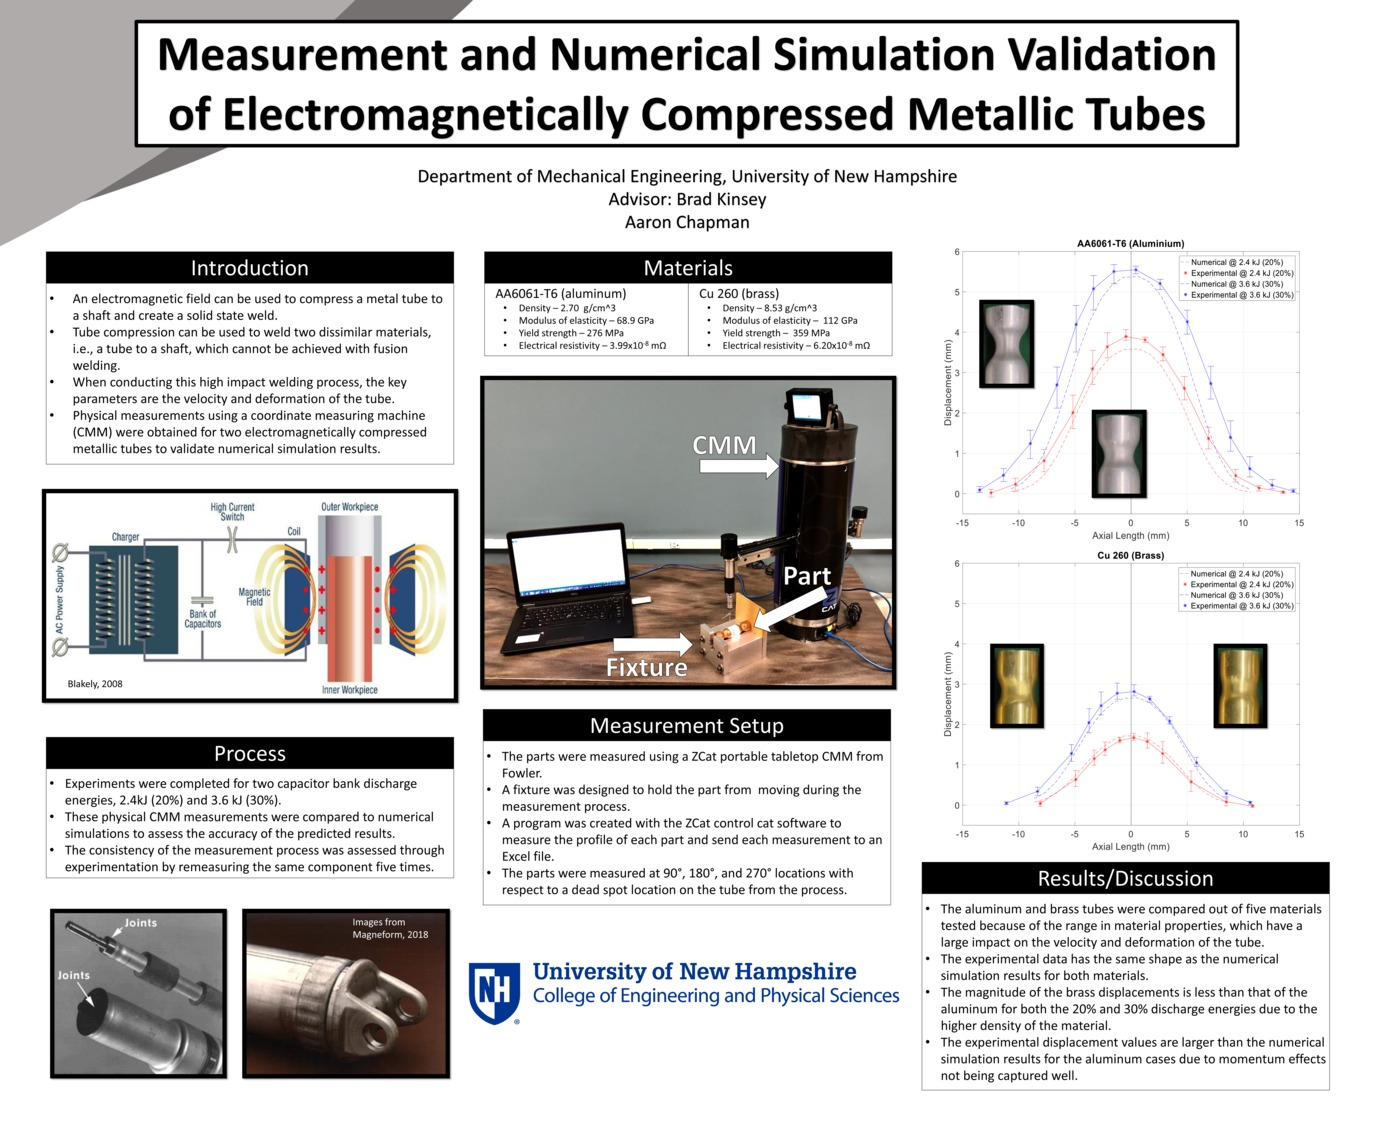 Measurement And Numerical Simulation Validation Of Electromagnetically Compressed Metallic Tubes by asc1015